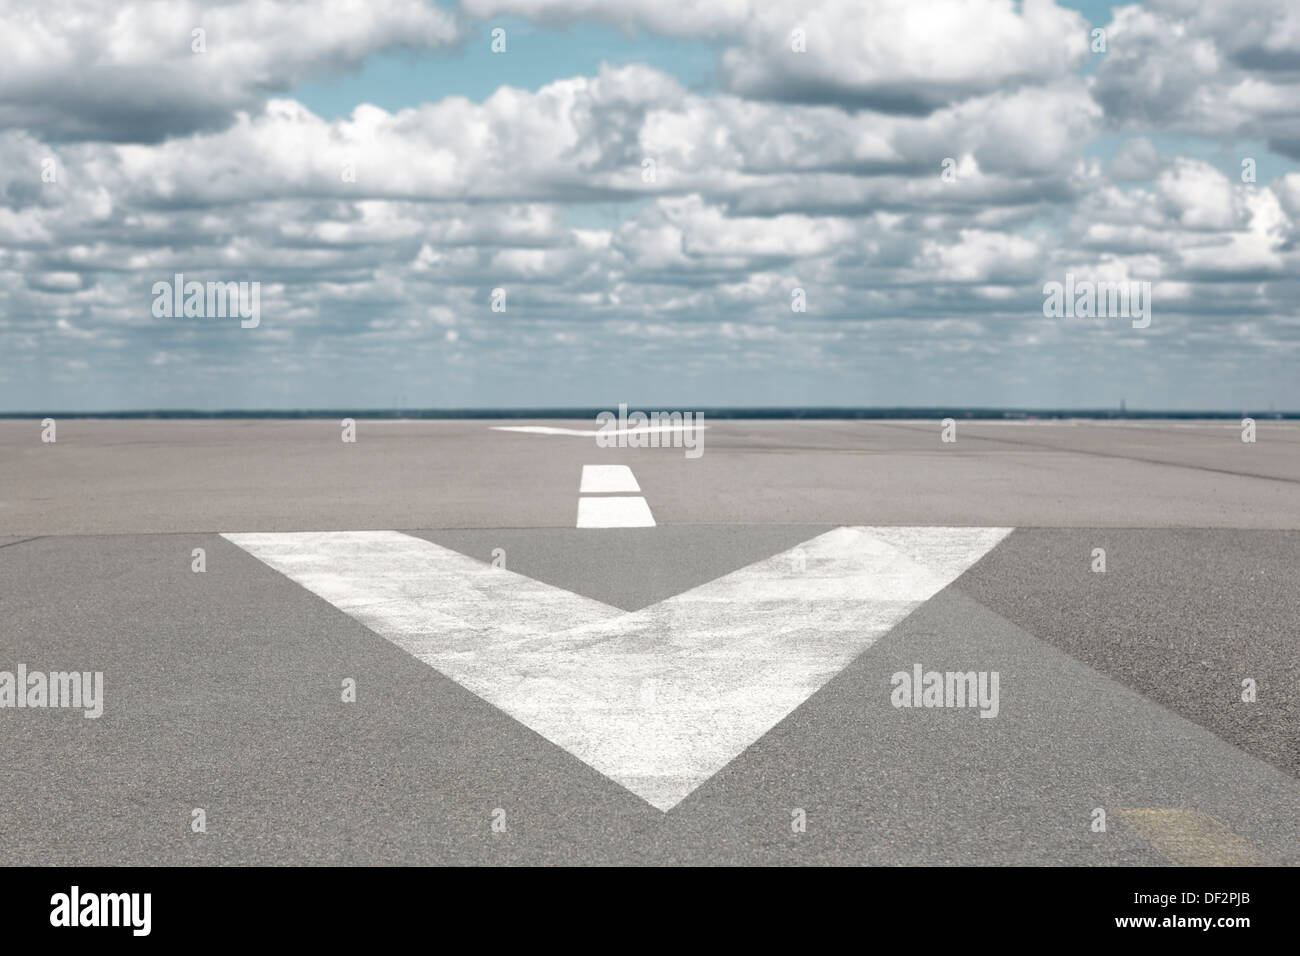 Runway airport with arrow and clouds - Stock Image